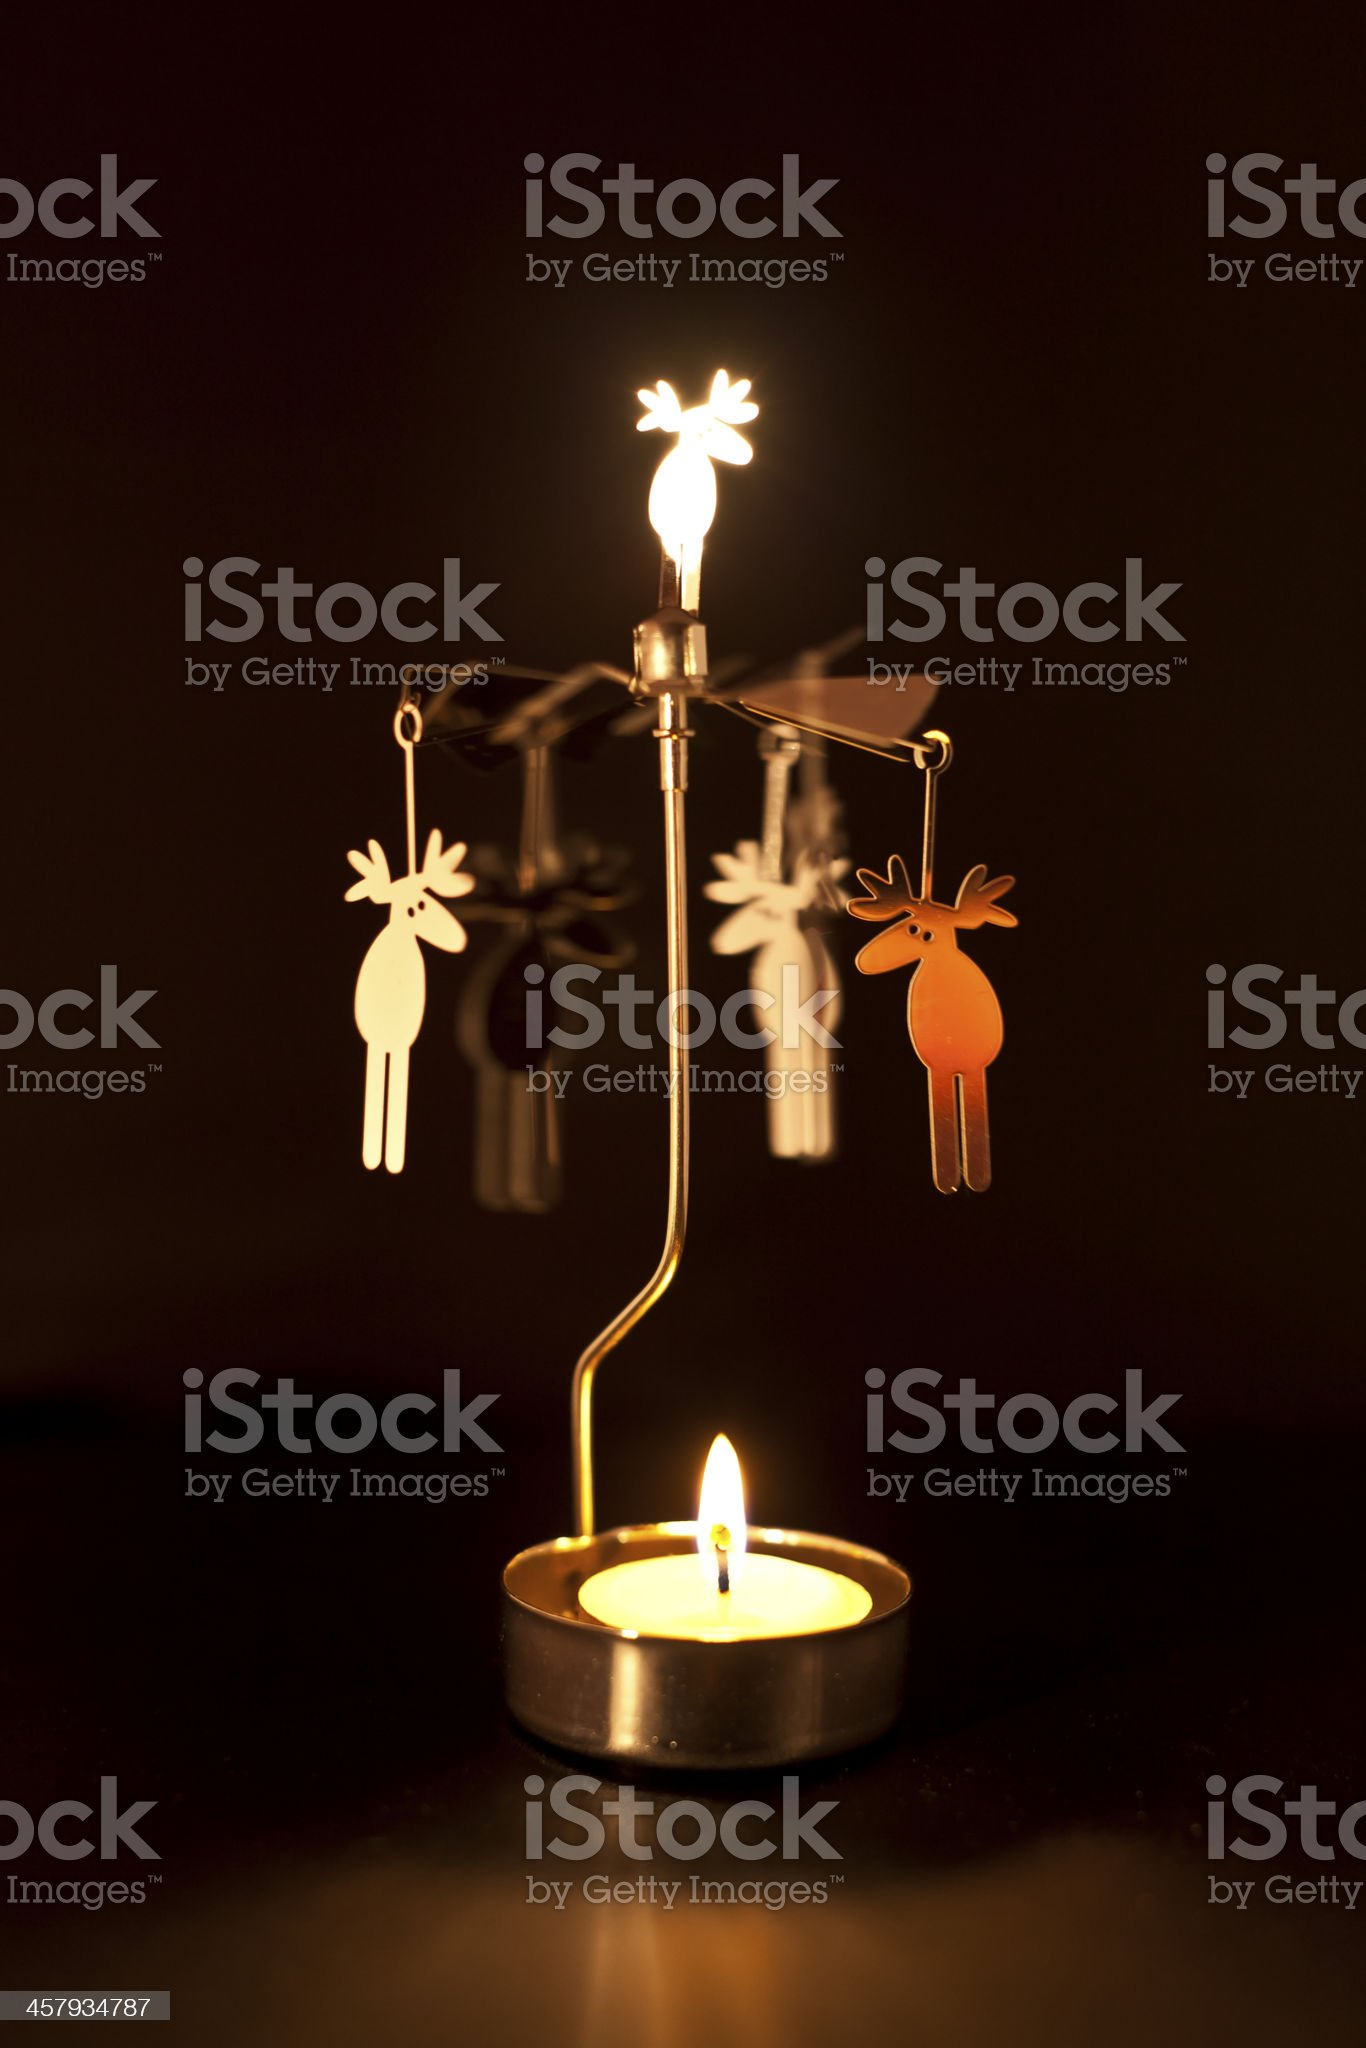 Deer Candle Carousel spinning table home decoration royalty-free stock photo